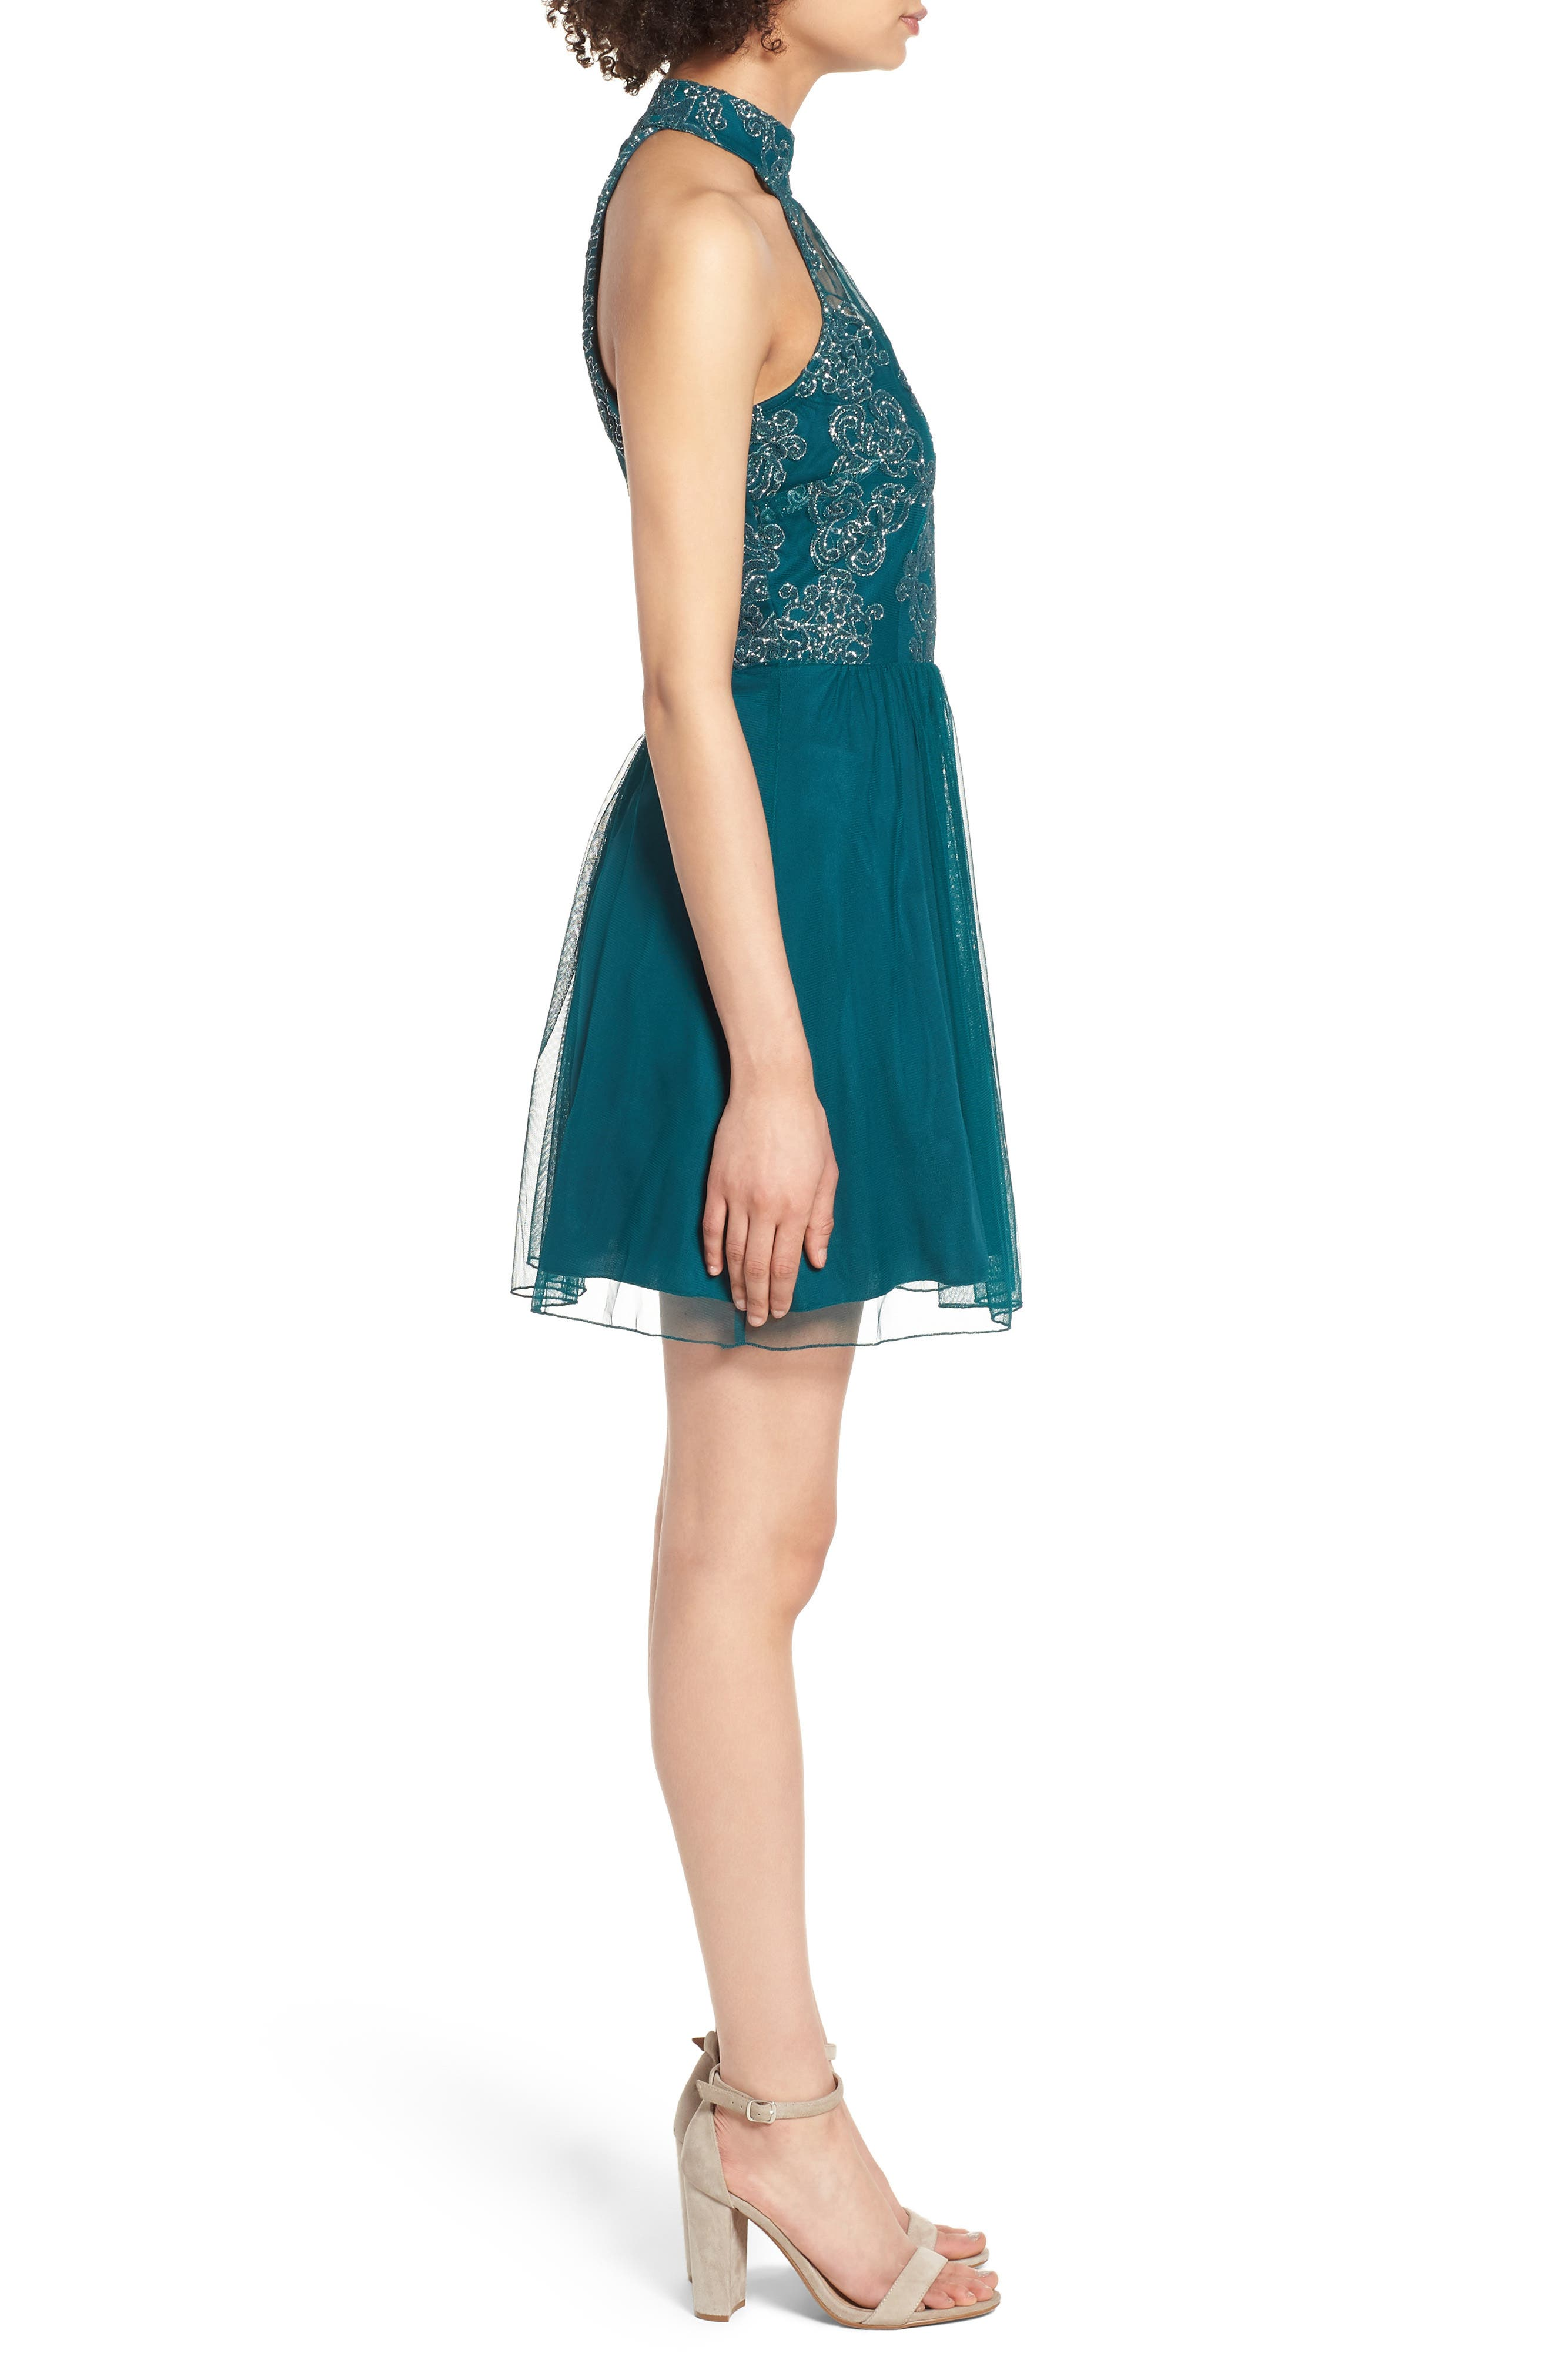 SPEECHLESS, Lace Fit & Flare Dress, Alternate thumbnail 4, color, EMERALD